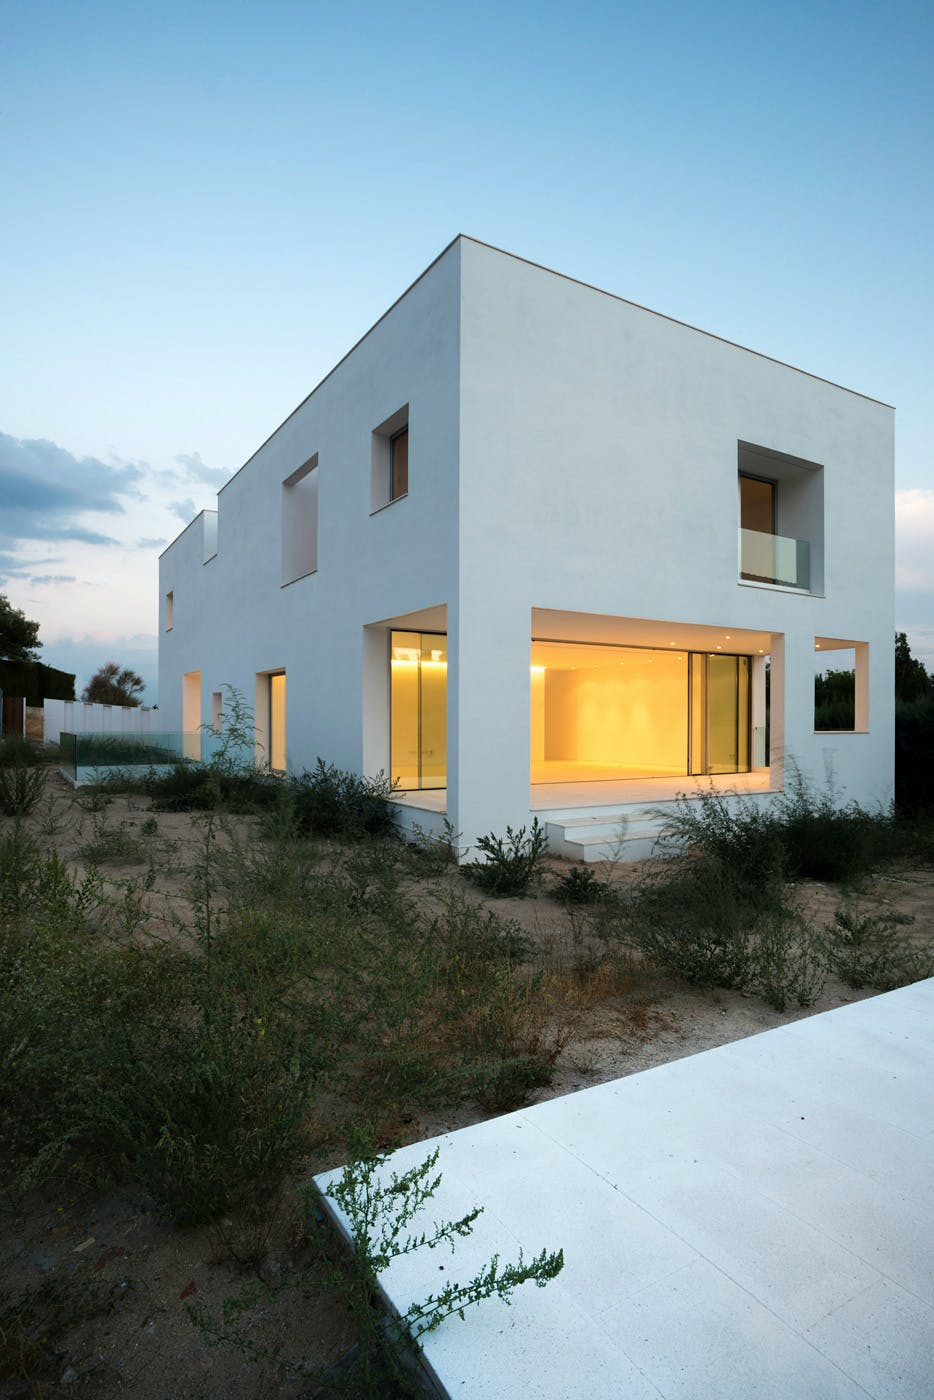 Showcase casa h by bojaus arquitectura features archinect for Arquitectura casa